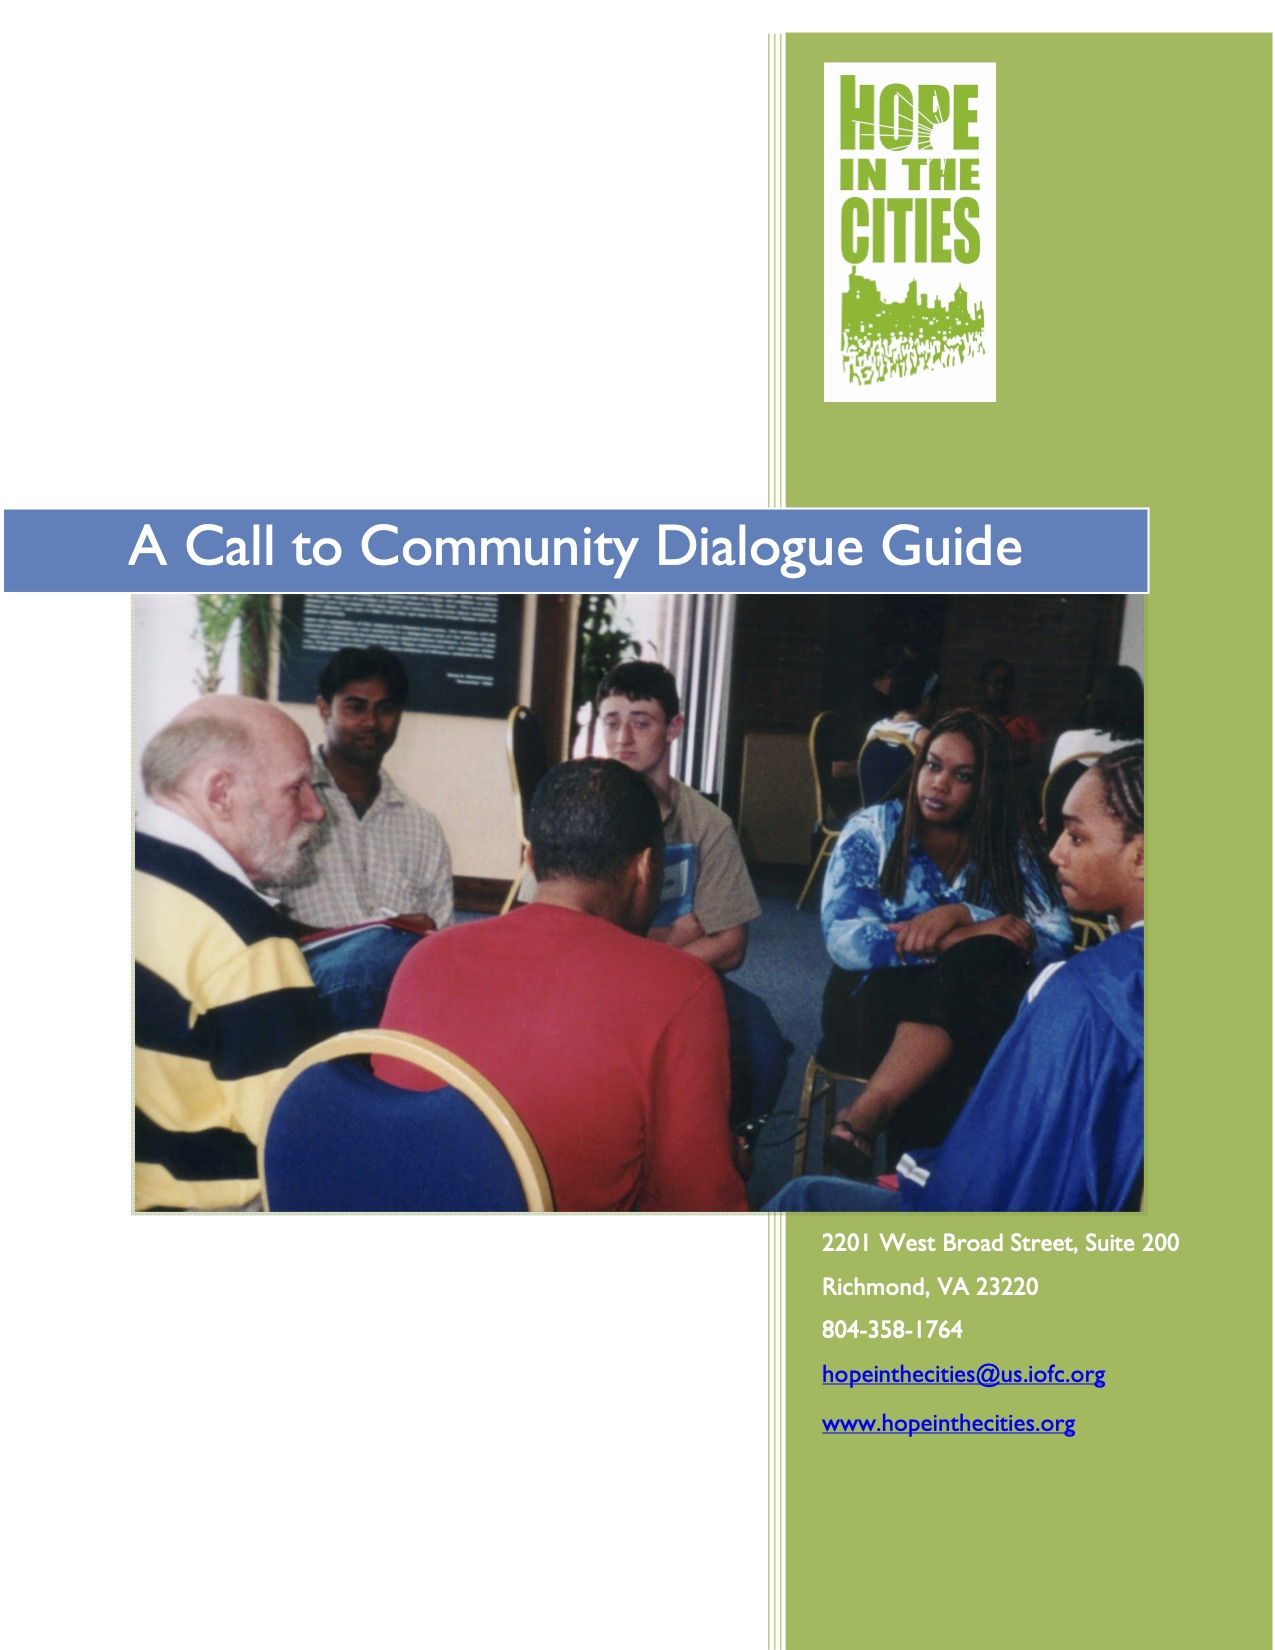 A Call to Community – Dialogue Guide (Rob Corcoran)